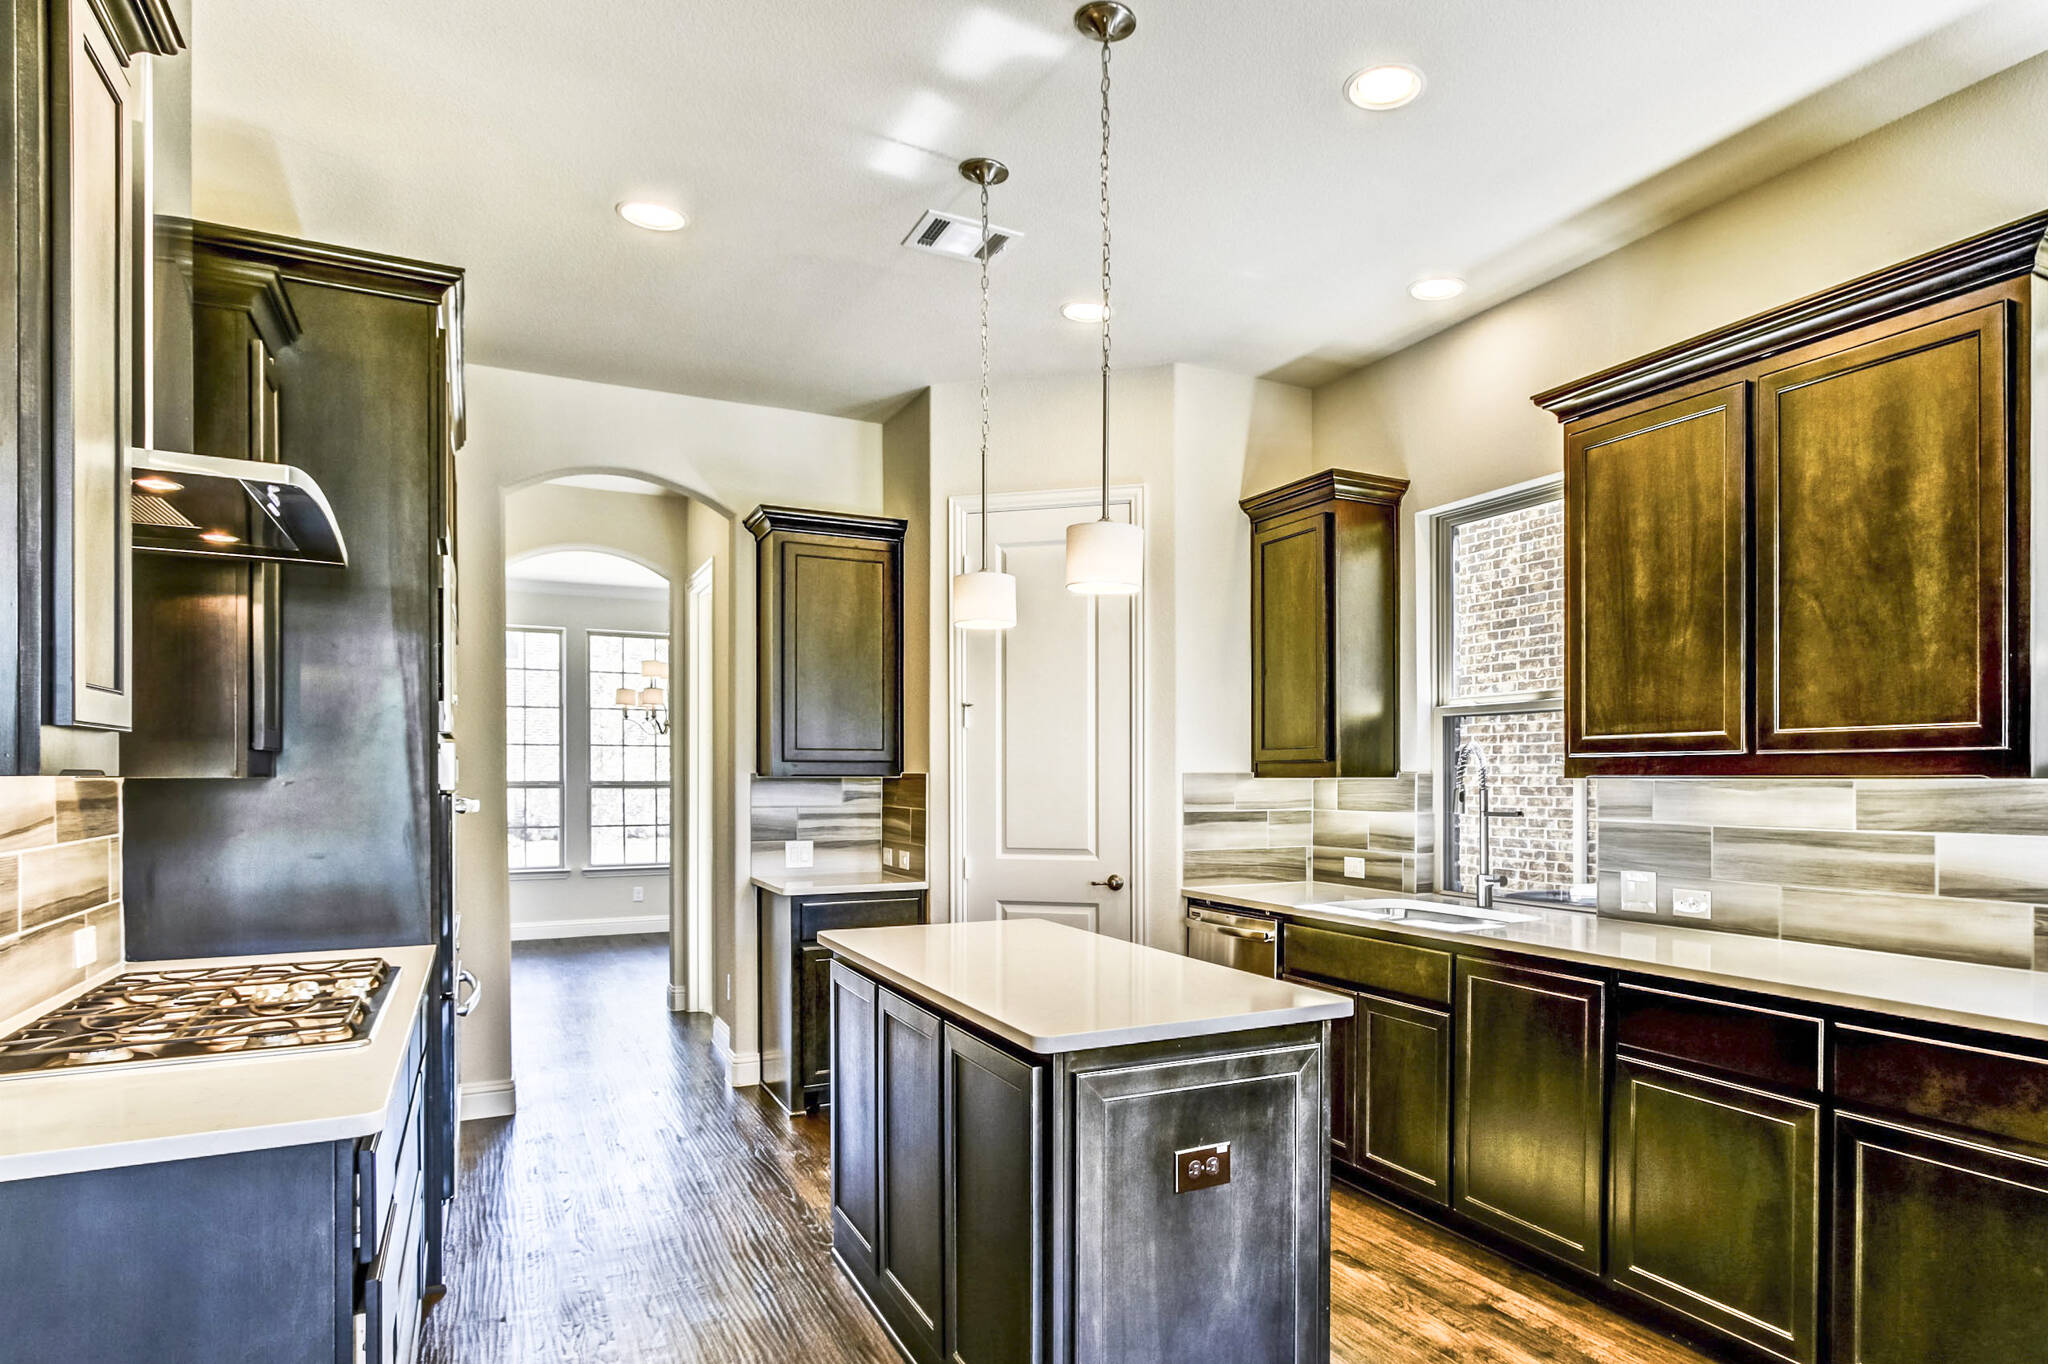 1916 Remington_Brookshire III_Villas at Mustang Park_010_Kitchen